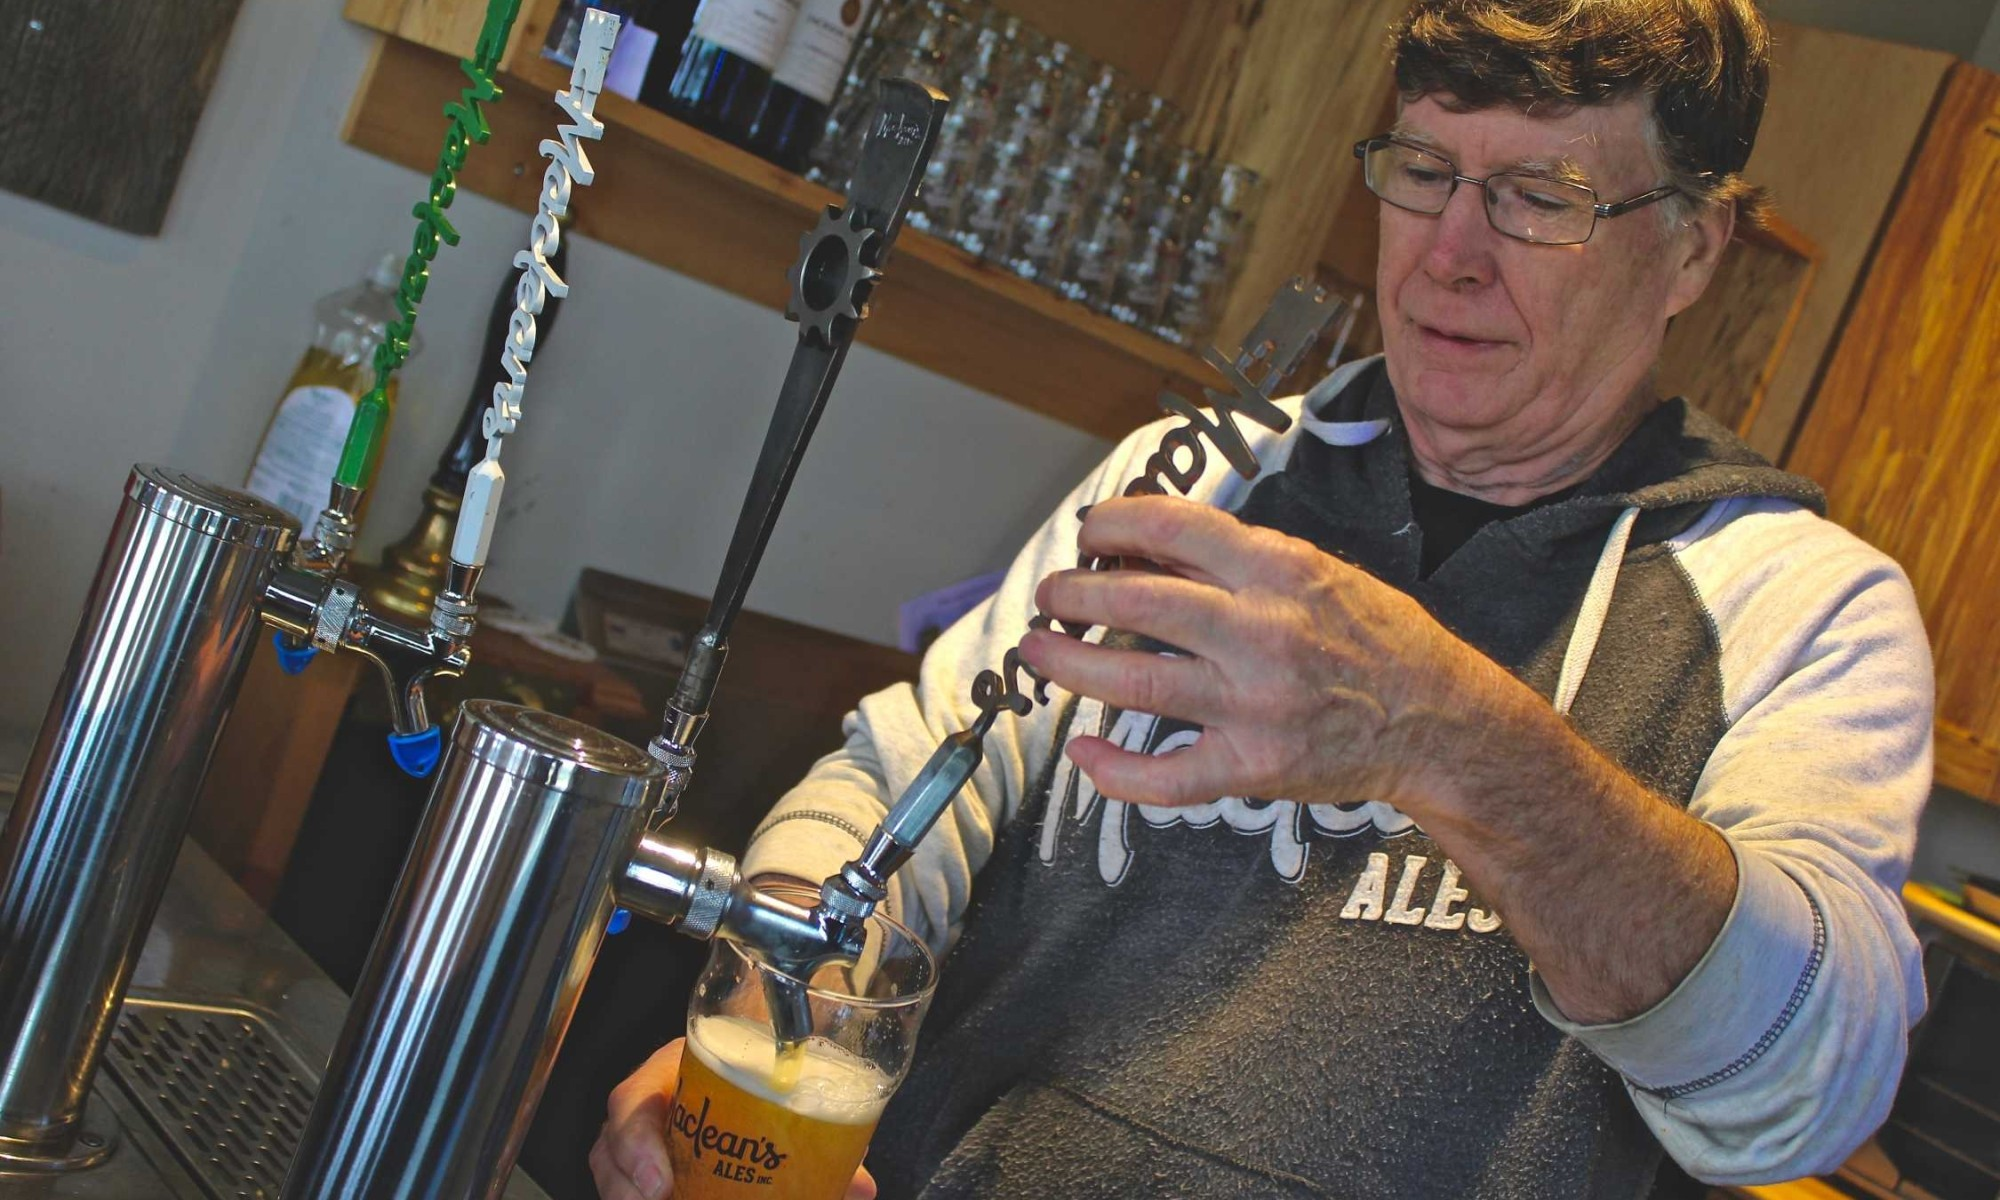 Charles pouring a beer